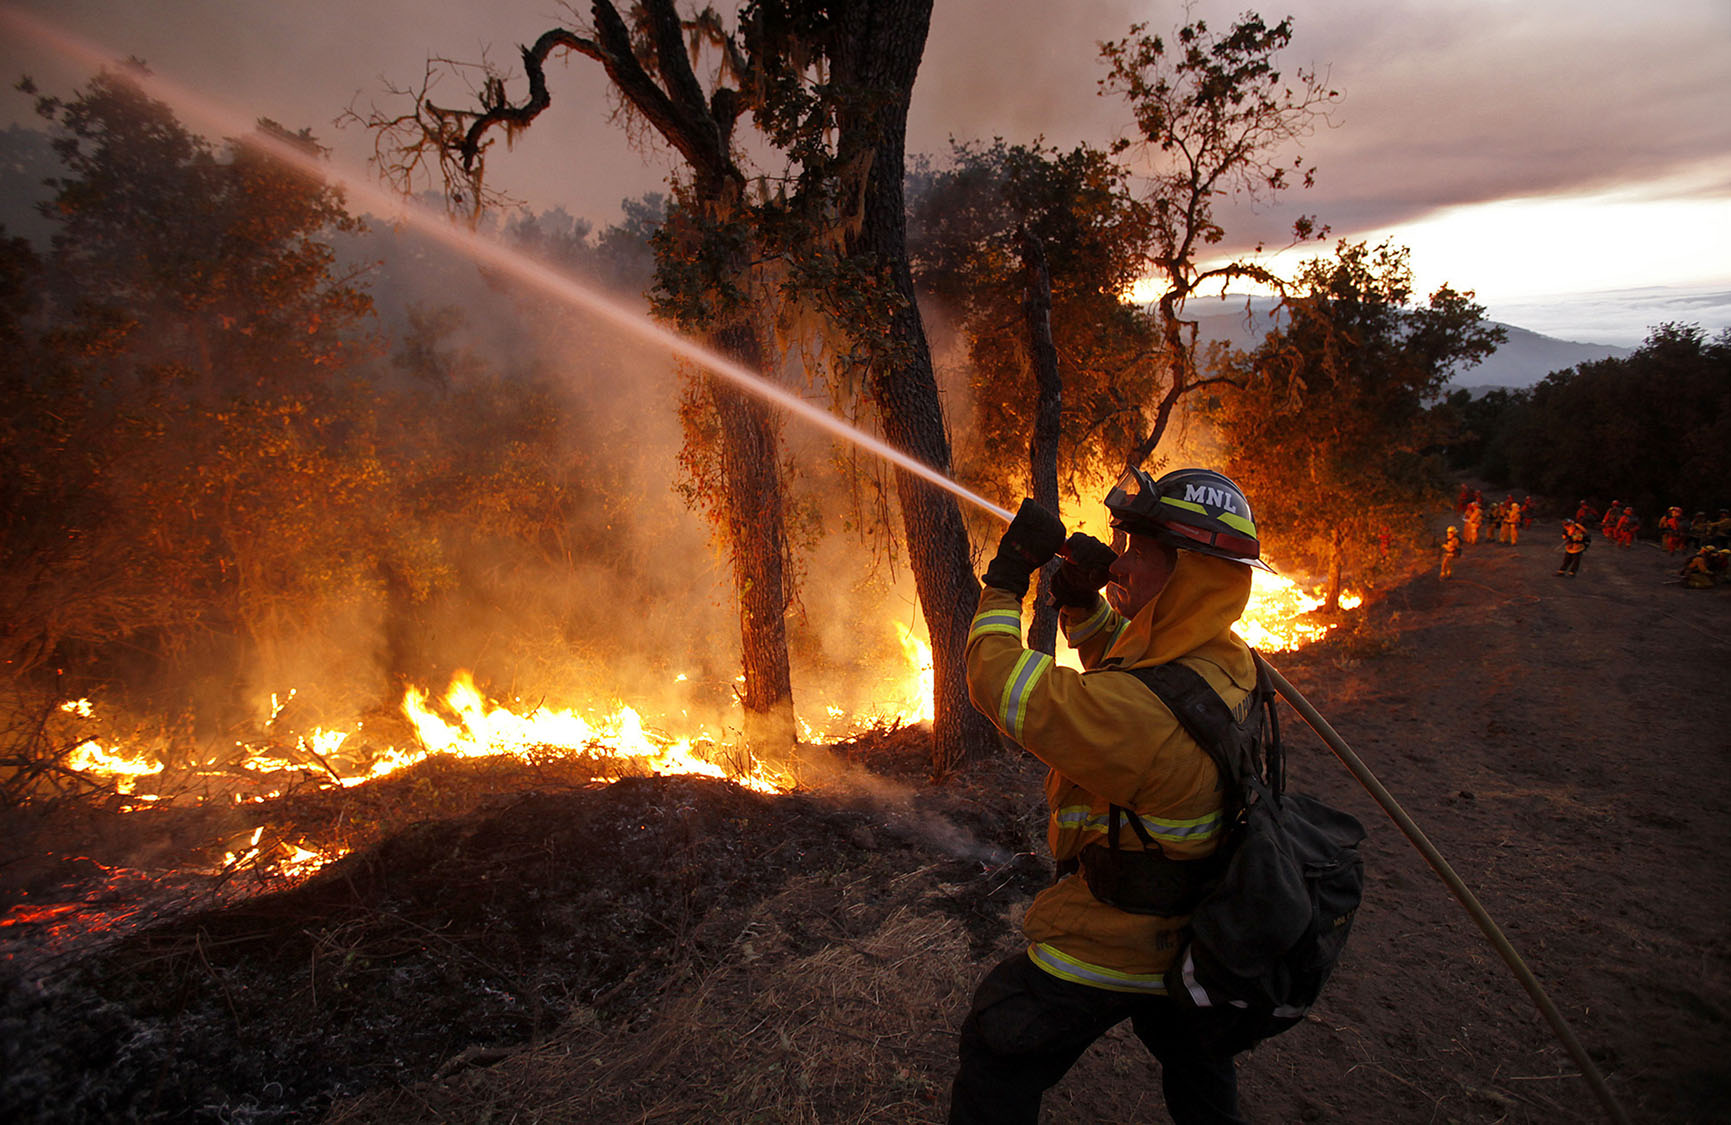 More than two dozen wildfires burn in the West